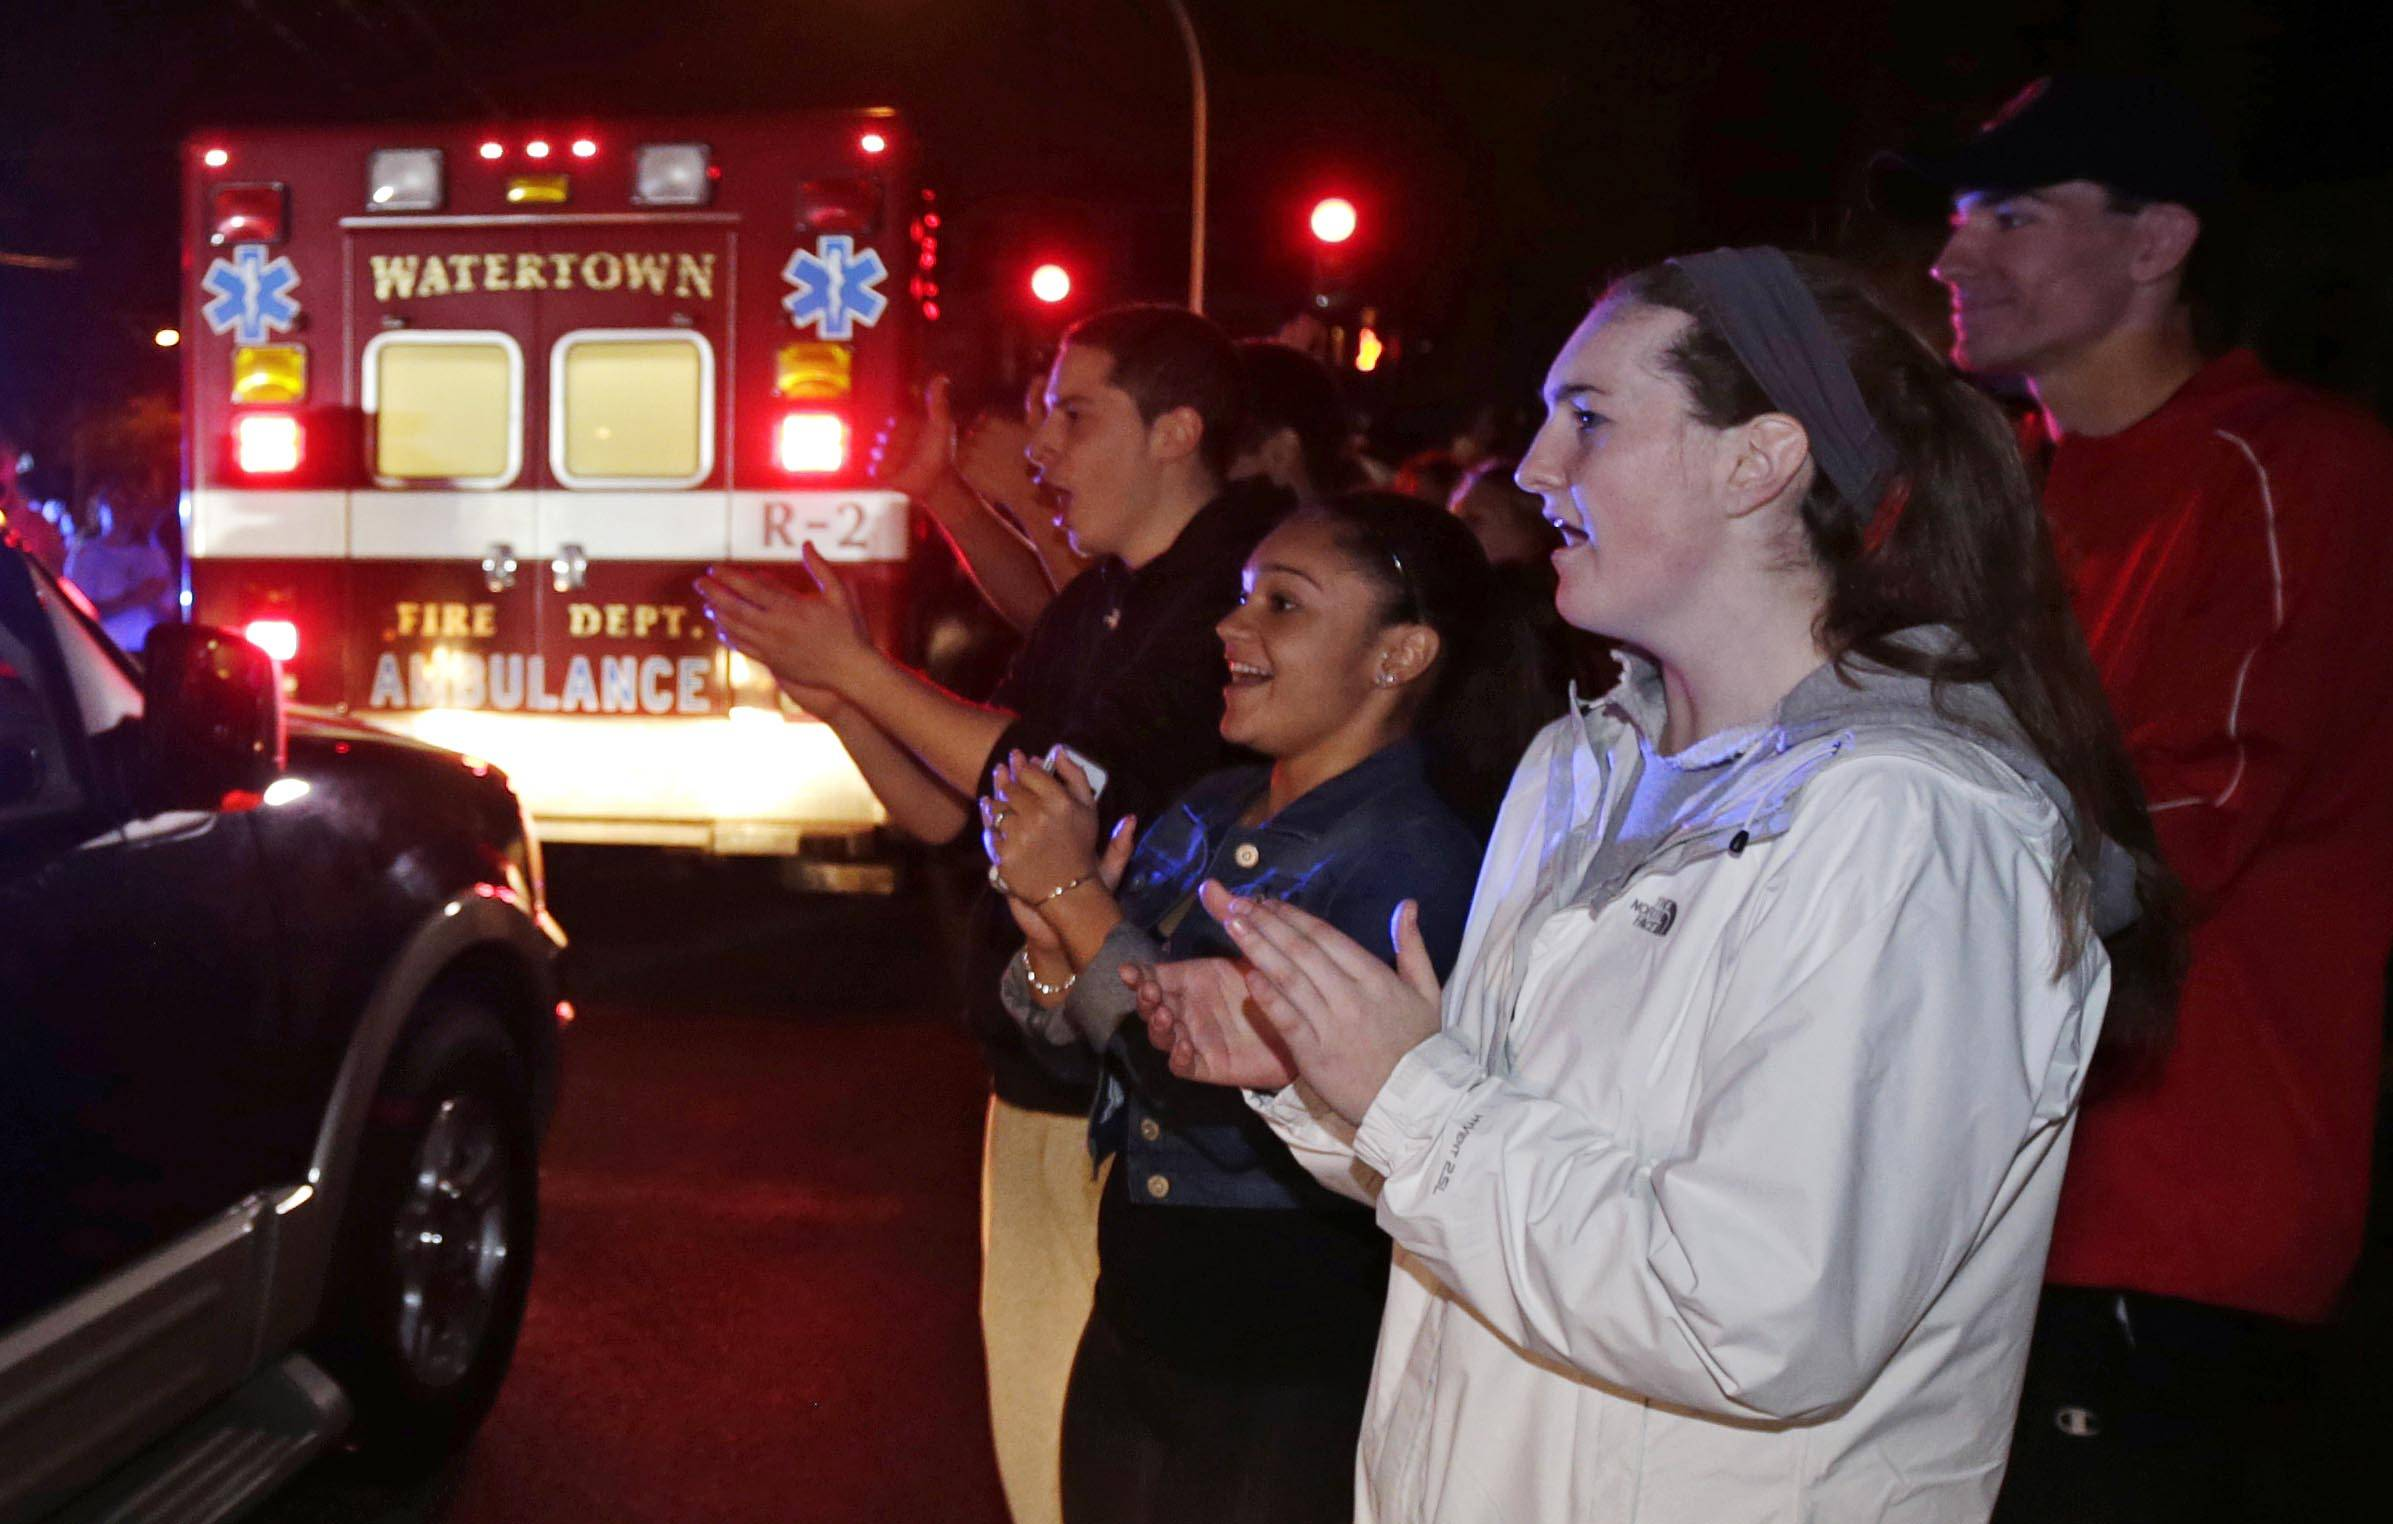 A gathering of people applaud as first responders leave the scene after the arrest of a suspect of the Boston Marathon bombings in Watertown, Mass., Friday, April 19, 2013. Two suspects in the Boston Marathon bombing killed an MIT police officer, injured a transit officer in a firefight and threw explosive devices at police during their getaway attempt.